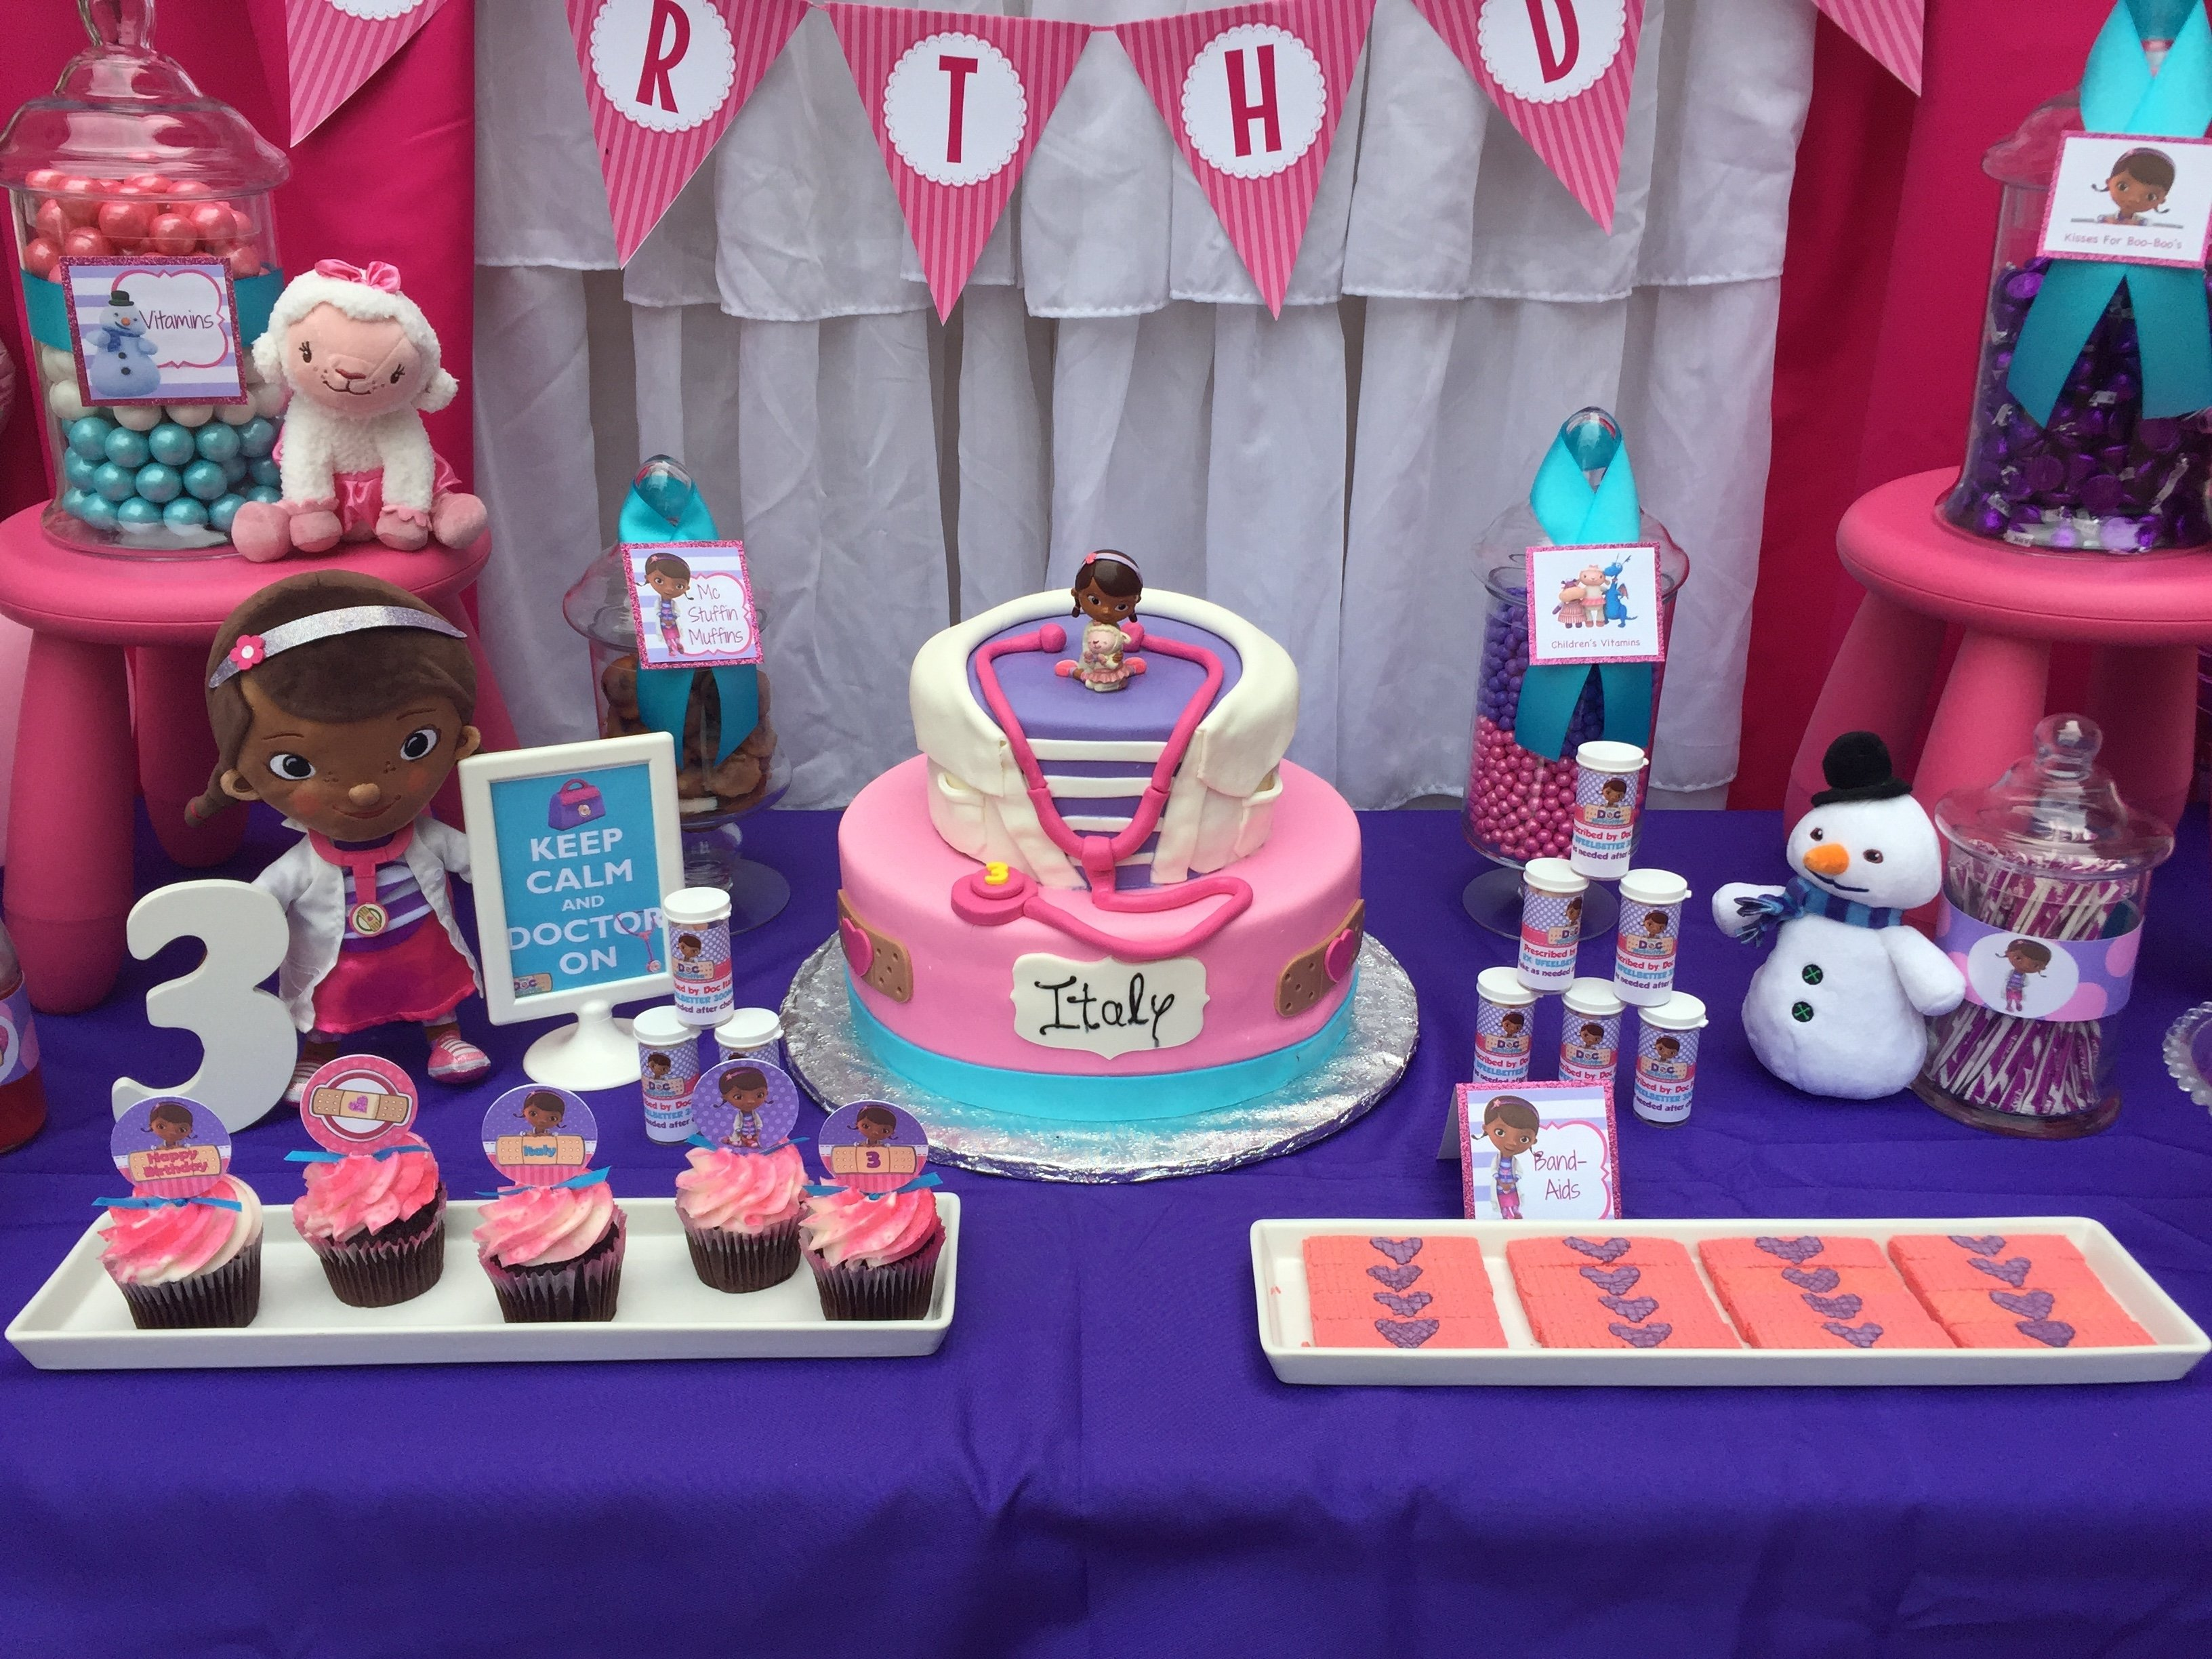 10 Lovely Doc Mcstuffins Birthday Party Ideas doc mcstuffins birthday cake candy table juliana dez events 2020